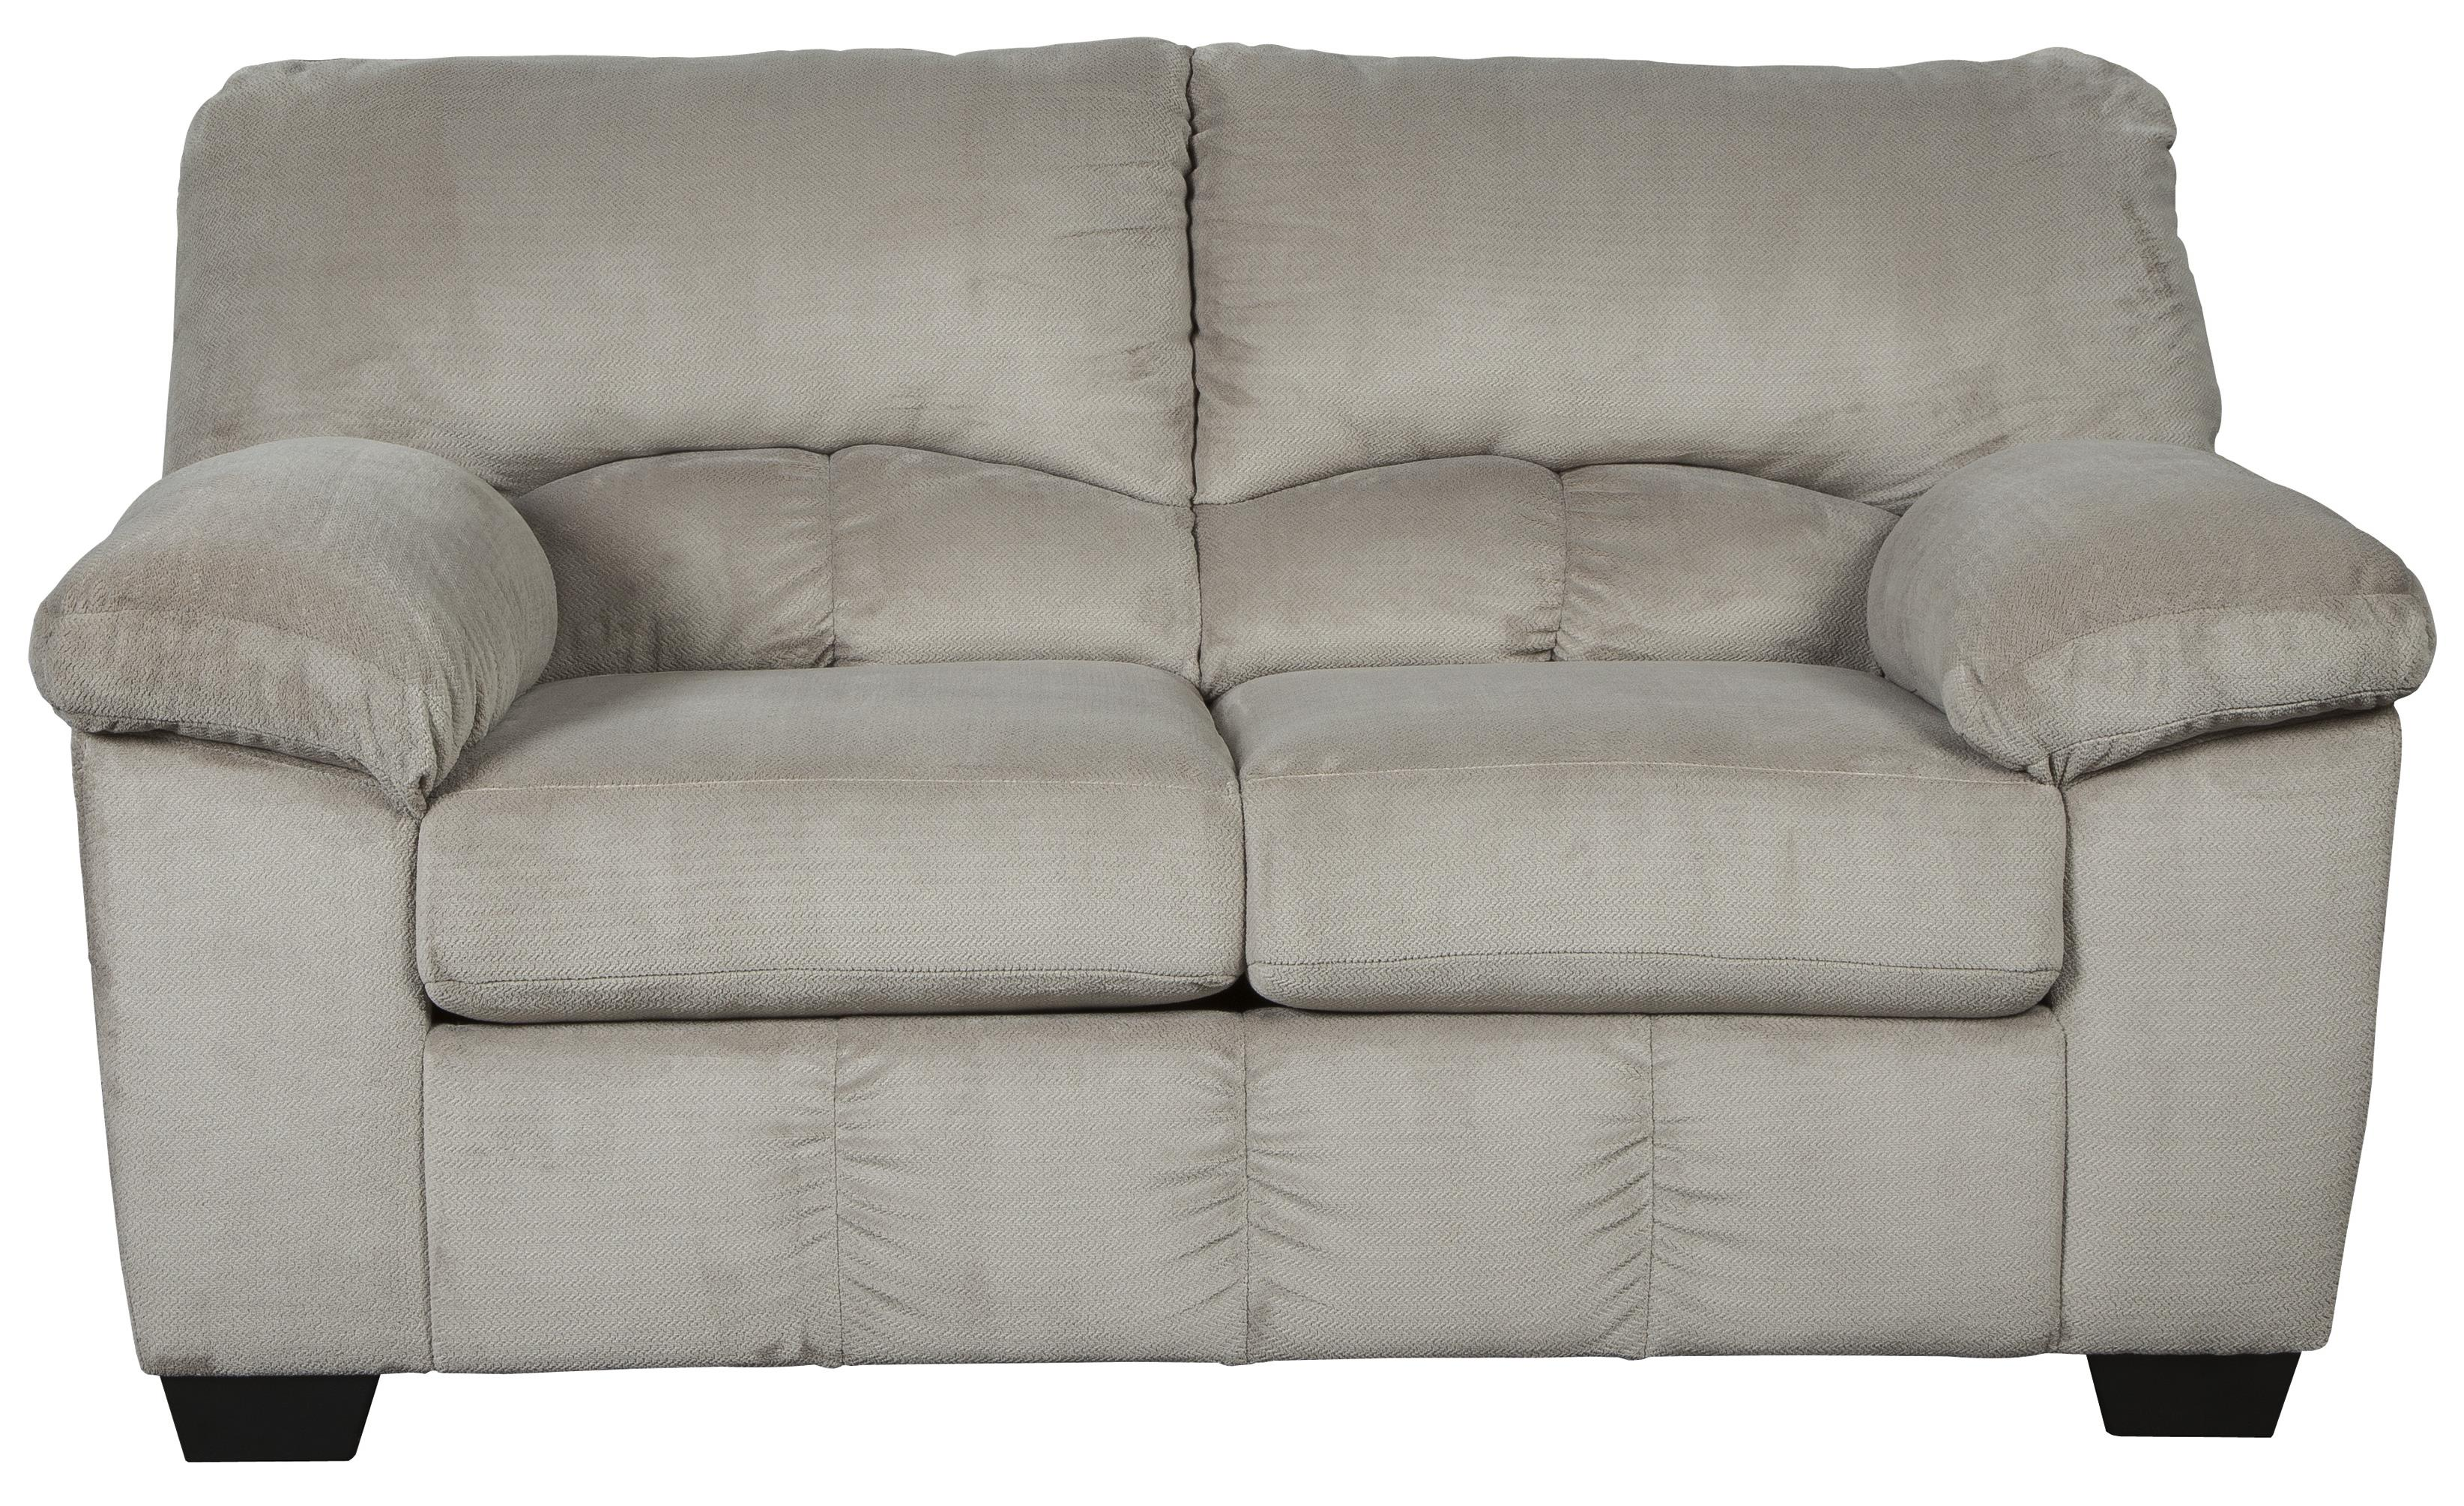 Signature Design by Ashley Dailey Loveseat - Item Number: 9540135